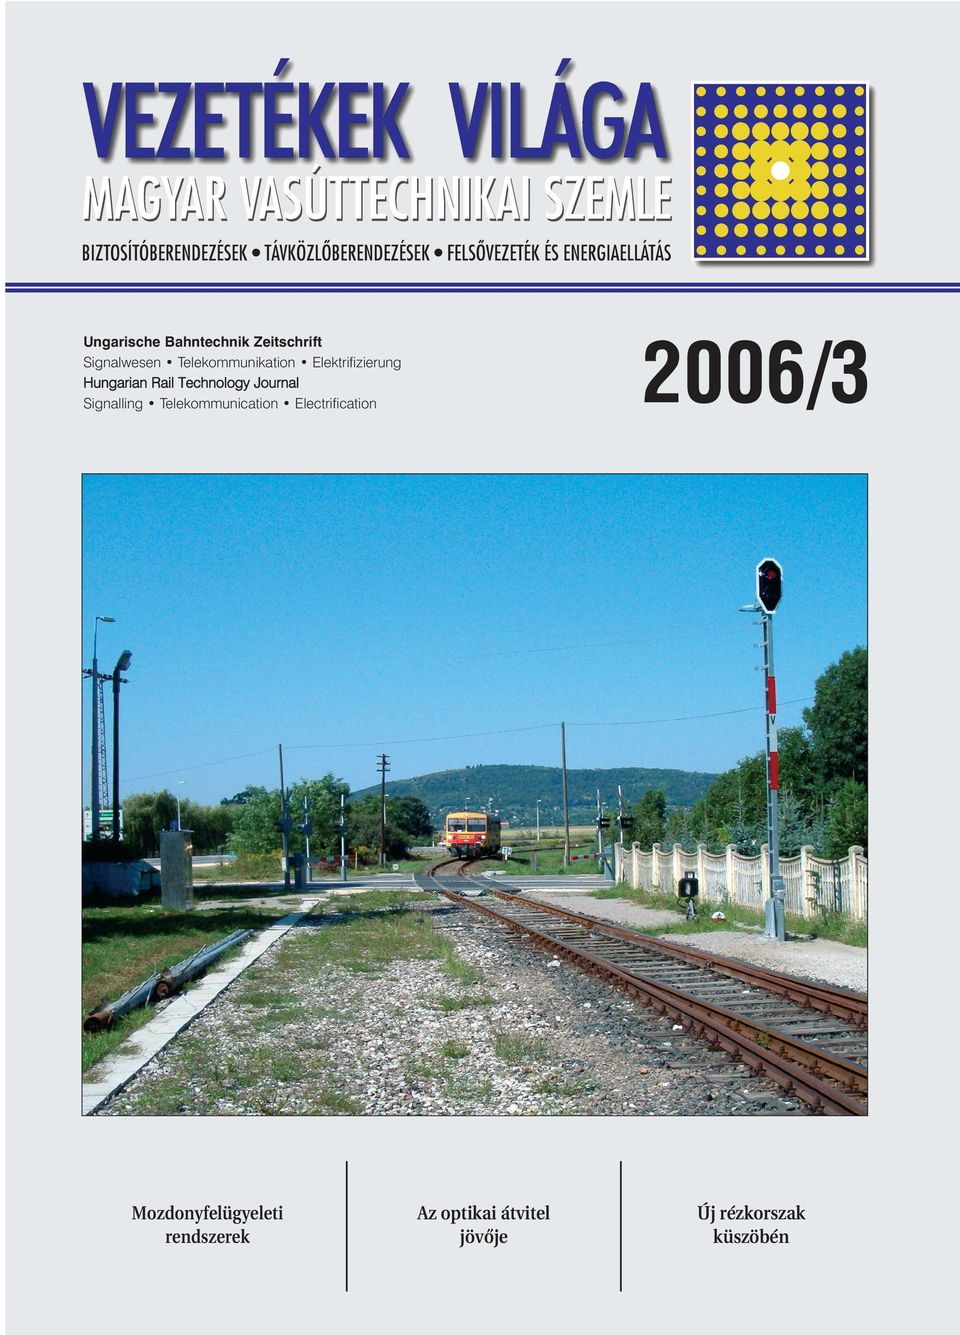 Journal Signalling Telekommunication Electrification 2006/3